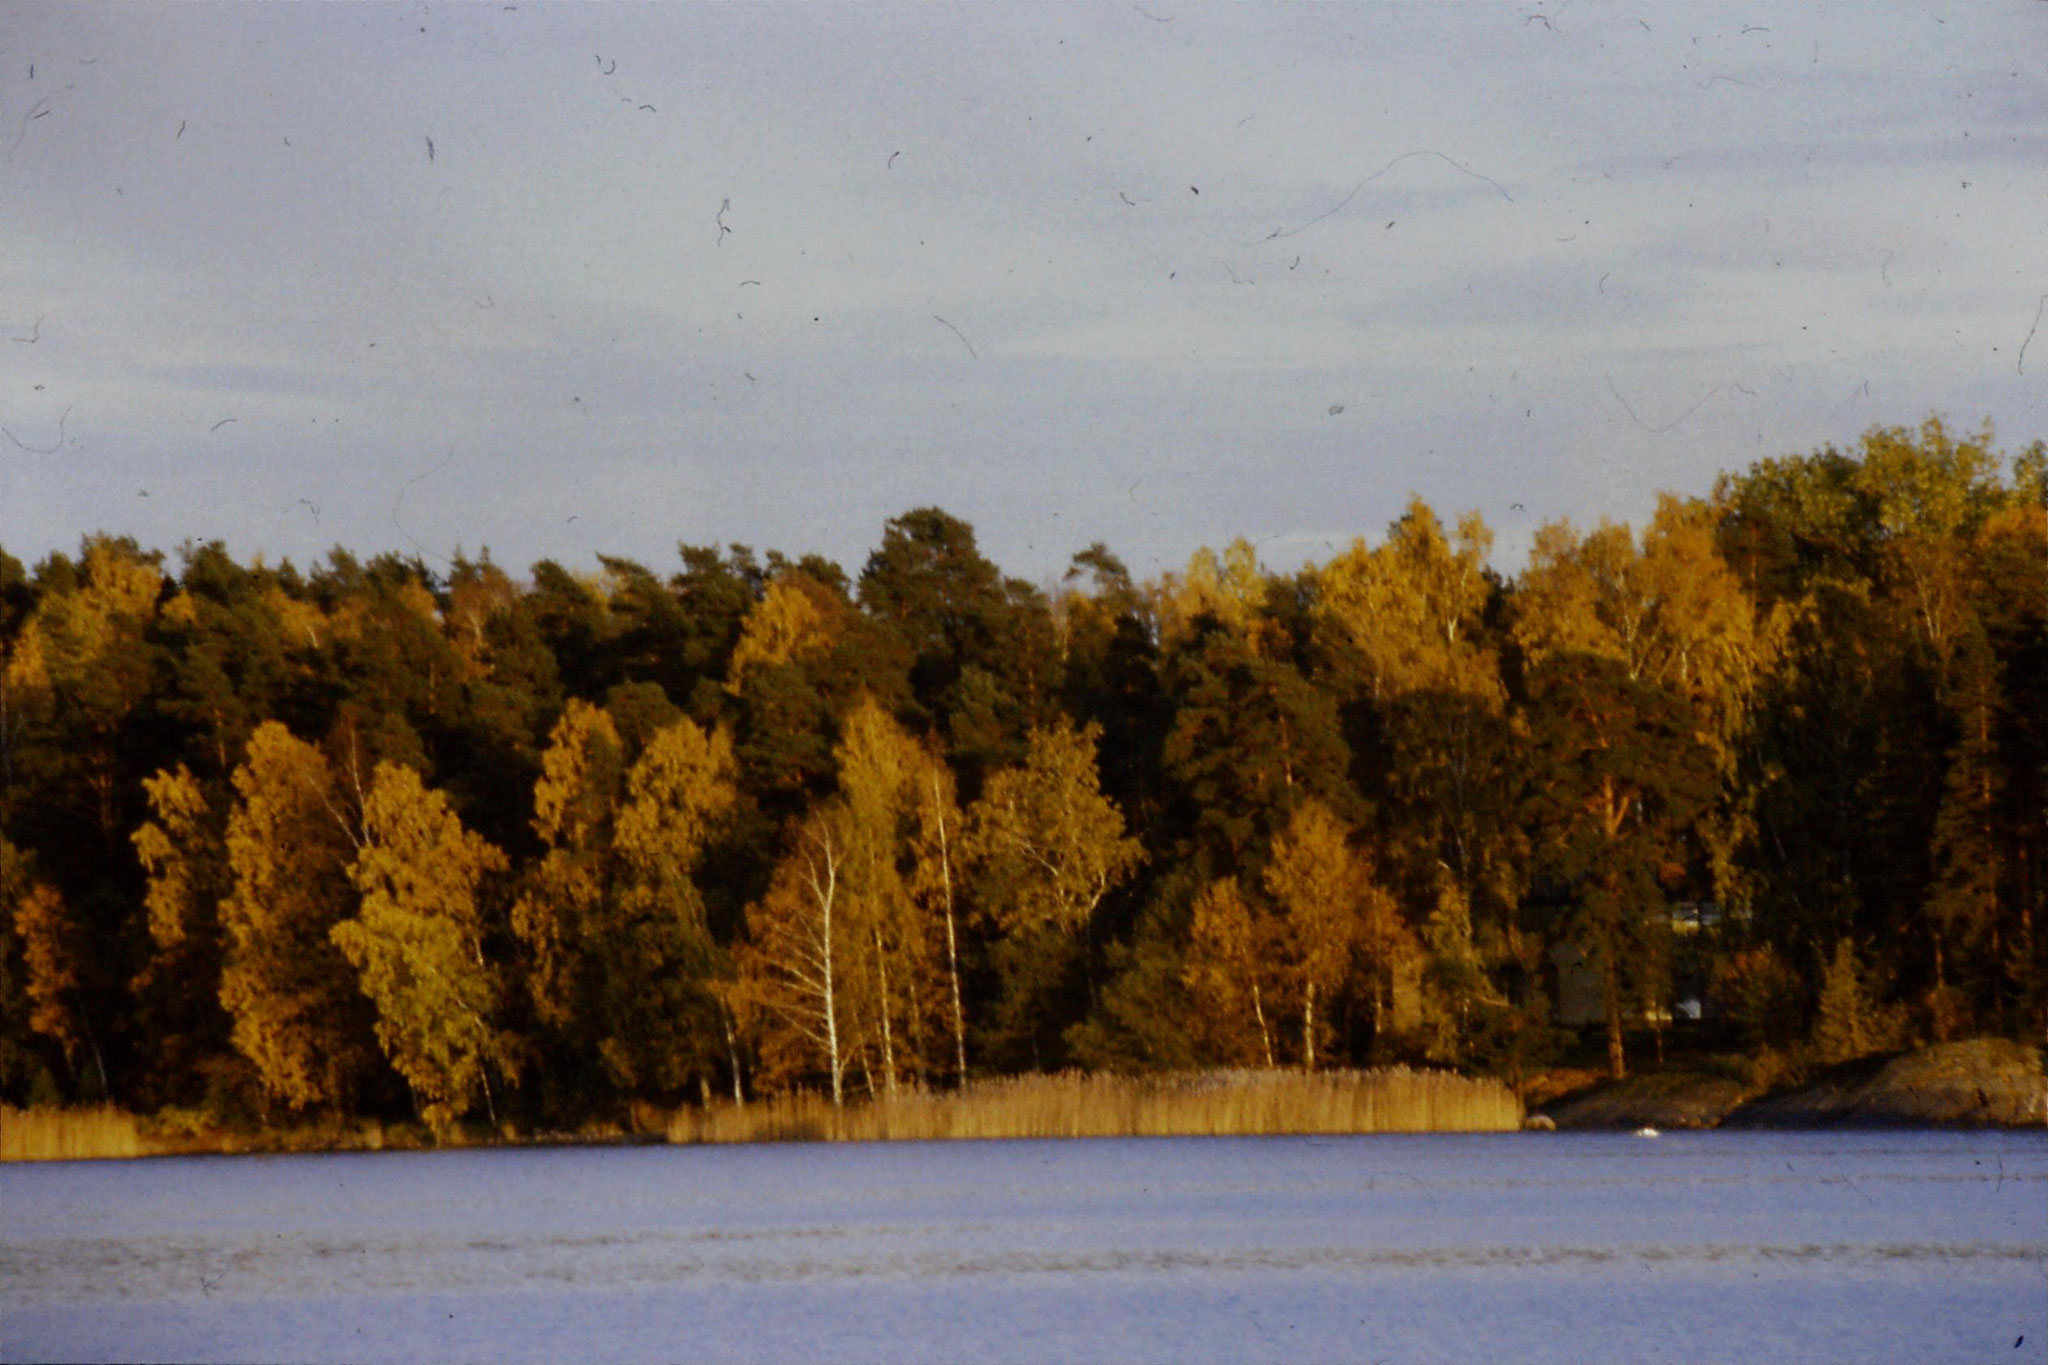 11/10/1988: 12: view across bay at Otaniemi